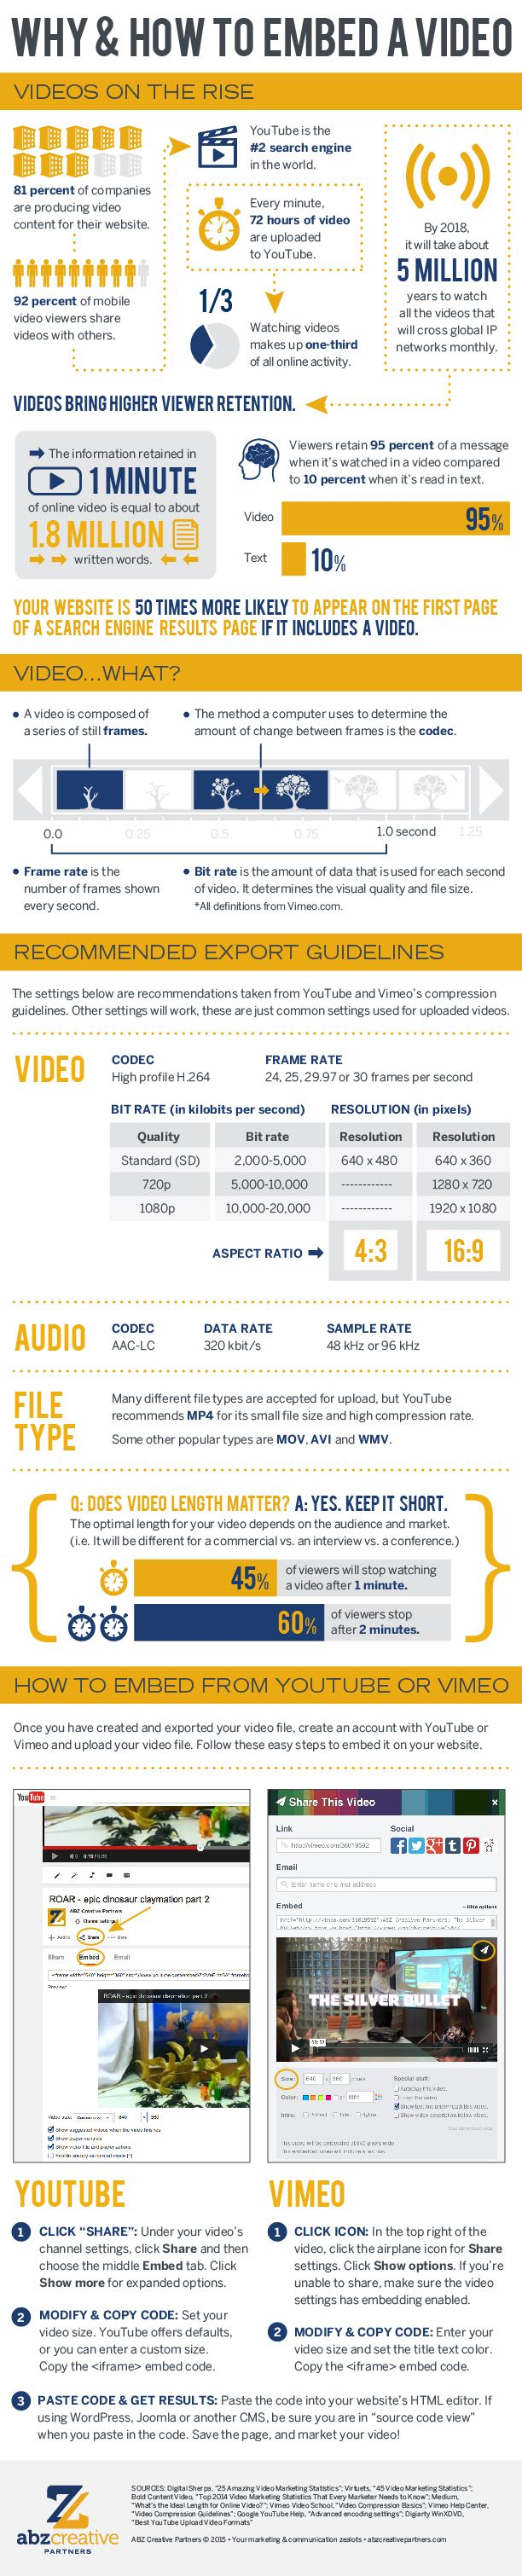 Why and How to Embed a Video #infographic #Video #ContentMarketing